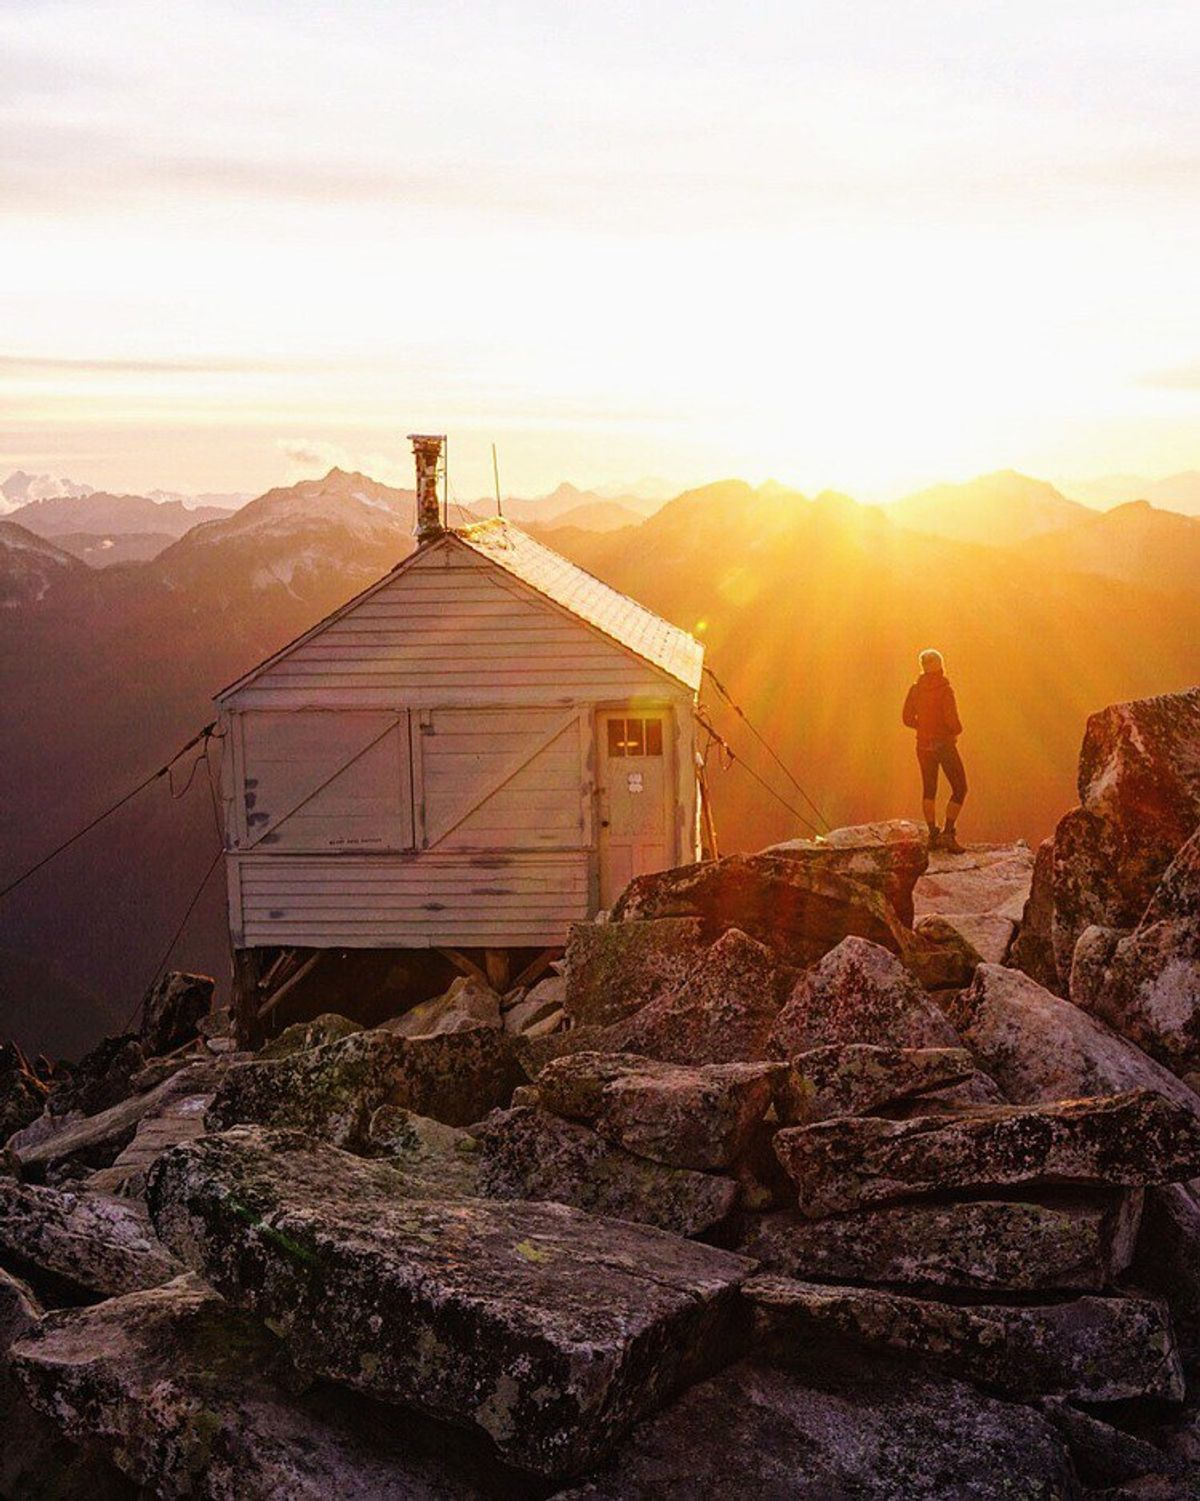 16 Instagram Accounts To Fuel Your Wanderlust